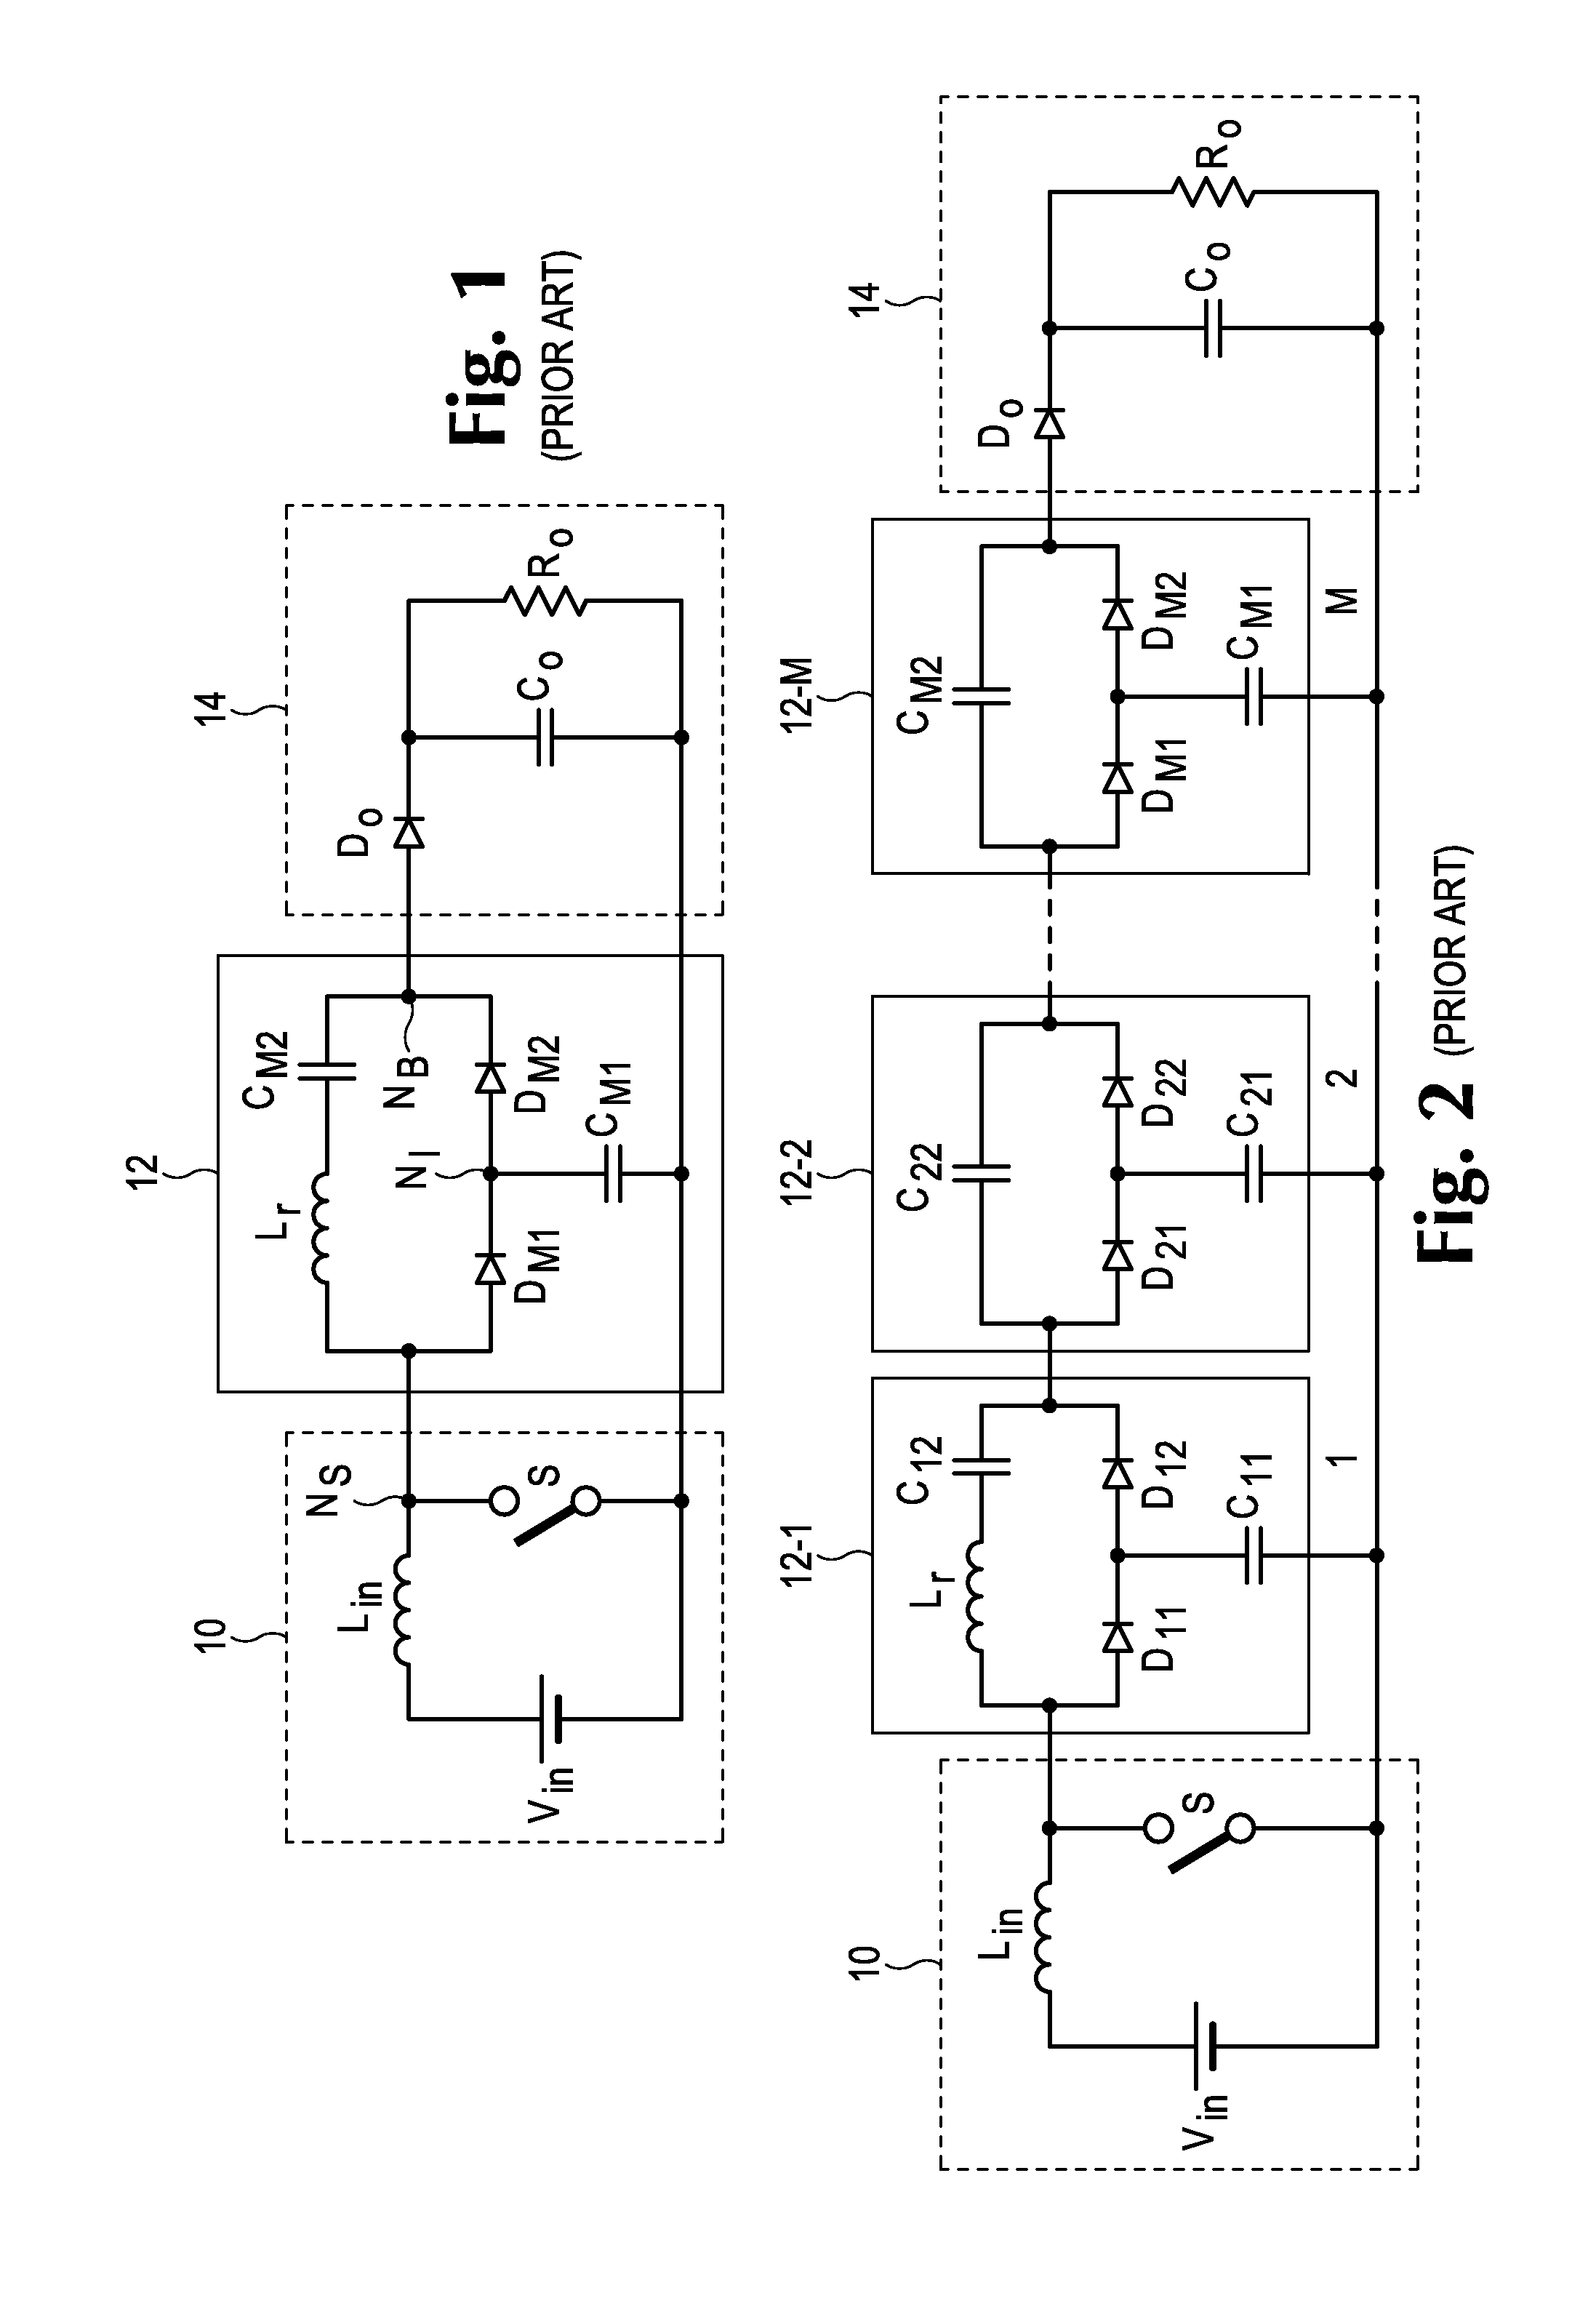 Patent Us8737093 Power Converter With Quasi Resonant Voltage Multiplier Diodes And Capacitors Drawing